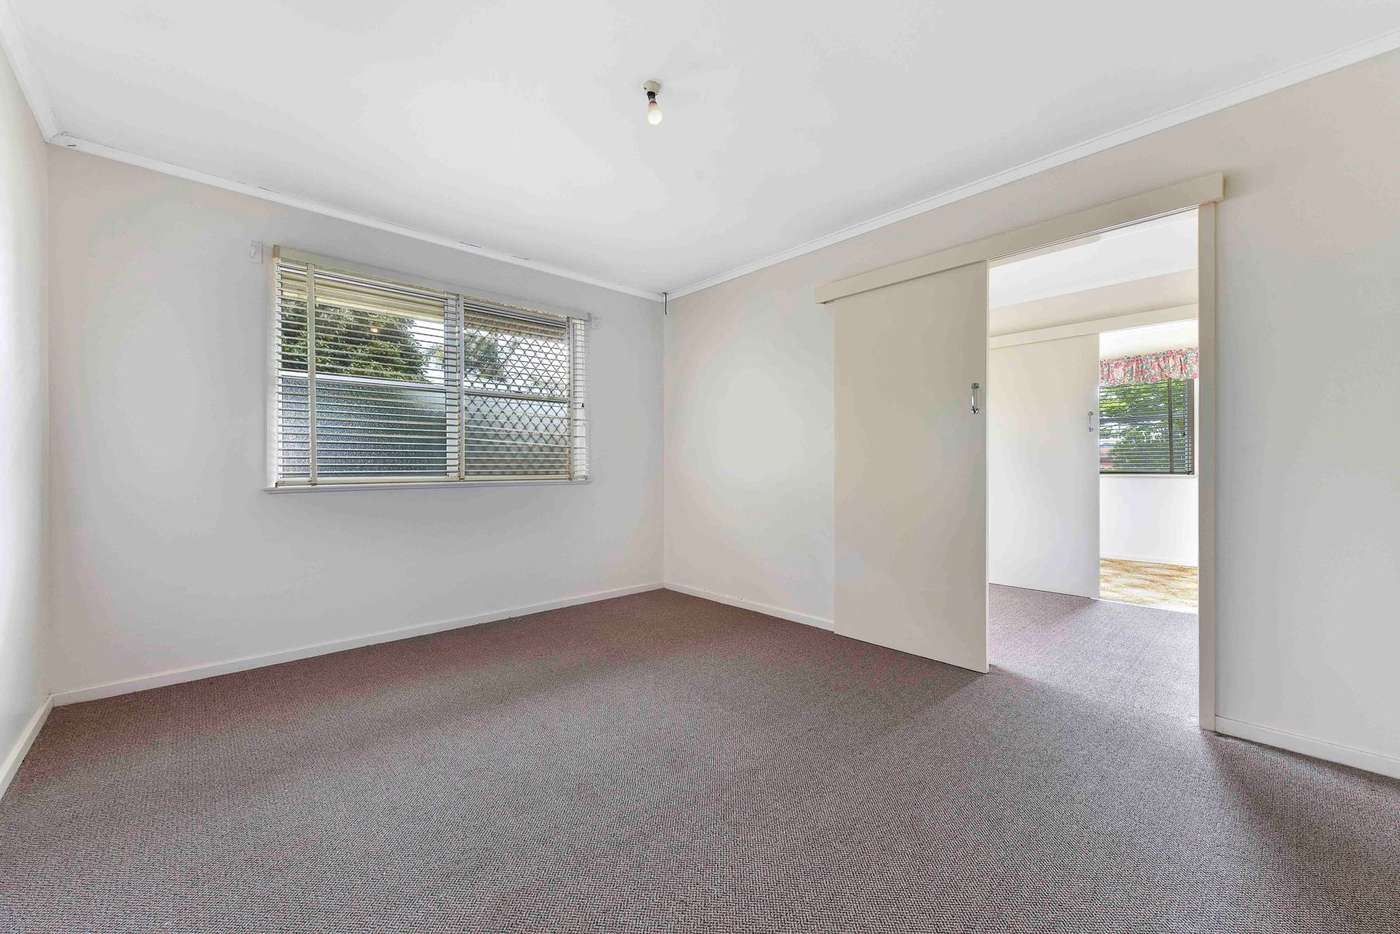 Seventh view of Homely house listing, 367 West Street, Harristown QLD 4350